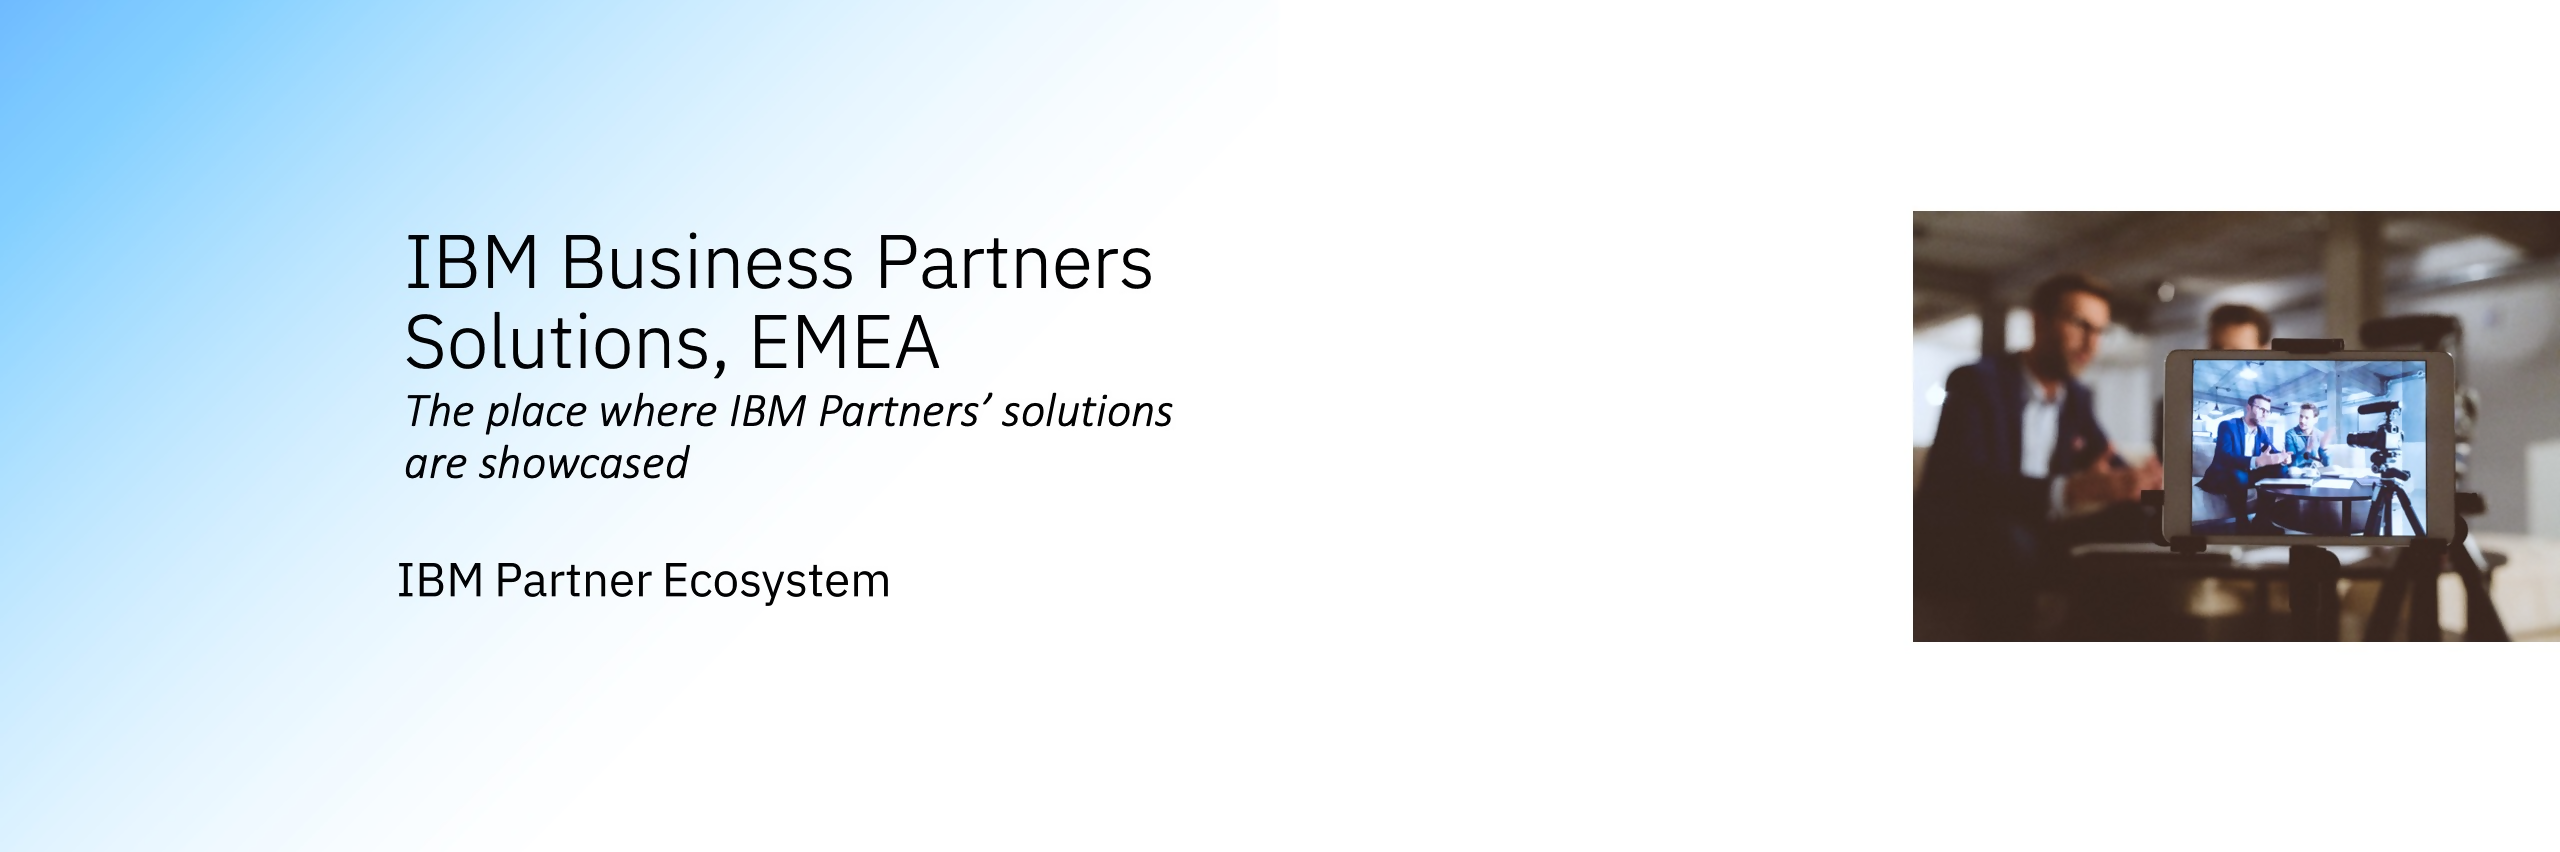 IBM EMEA Partners solutions